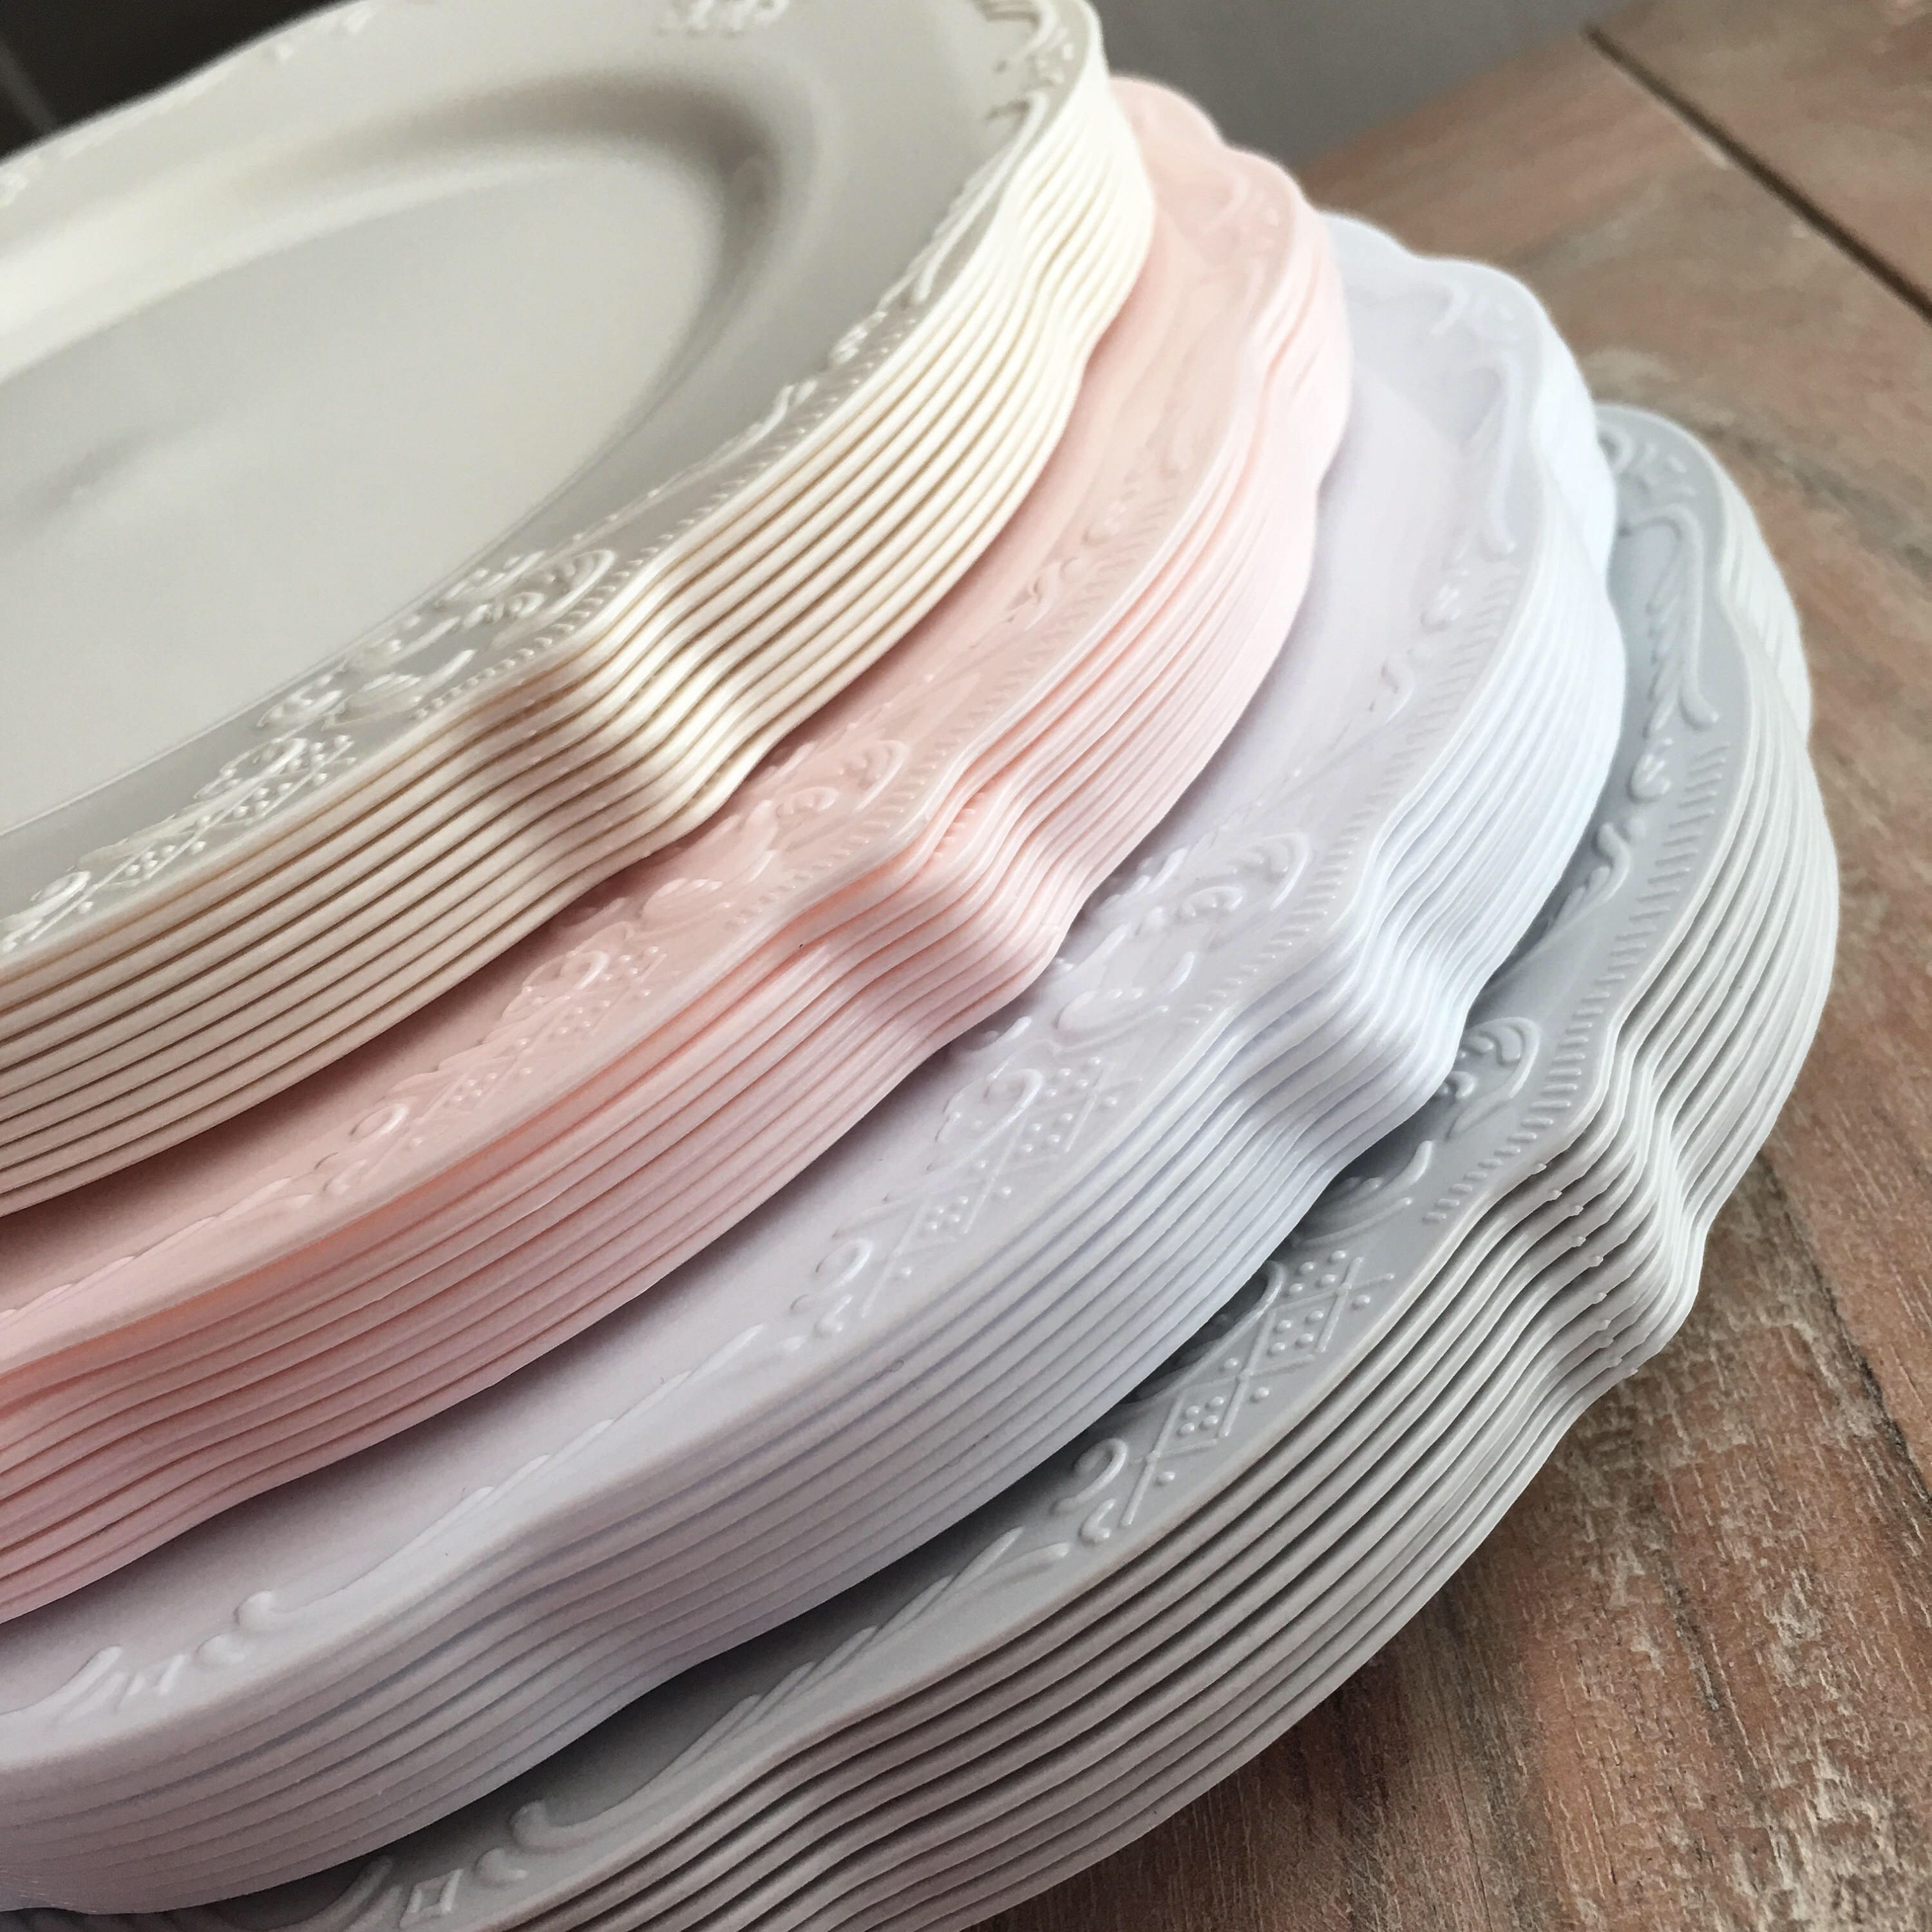 Romantically Modern Vintage Party Plates. Disposable